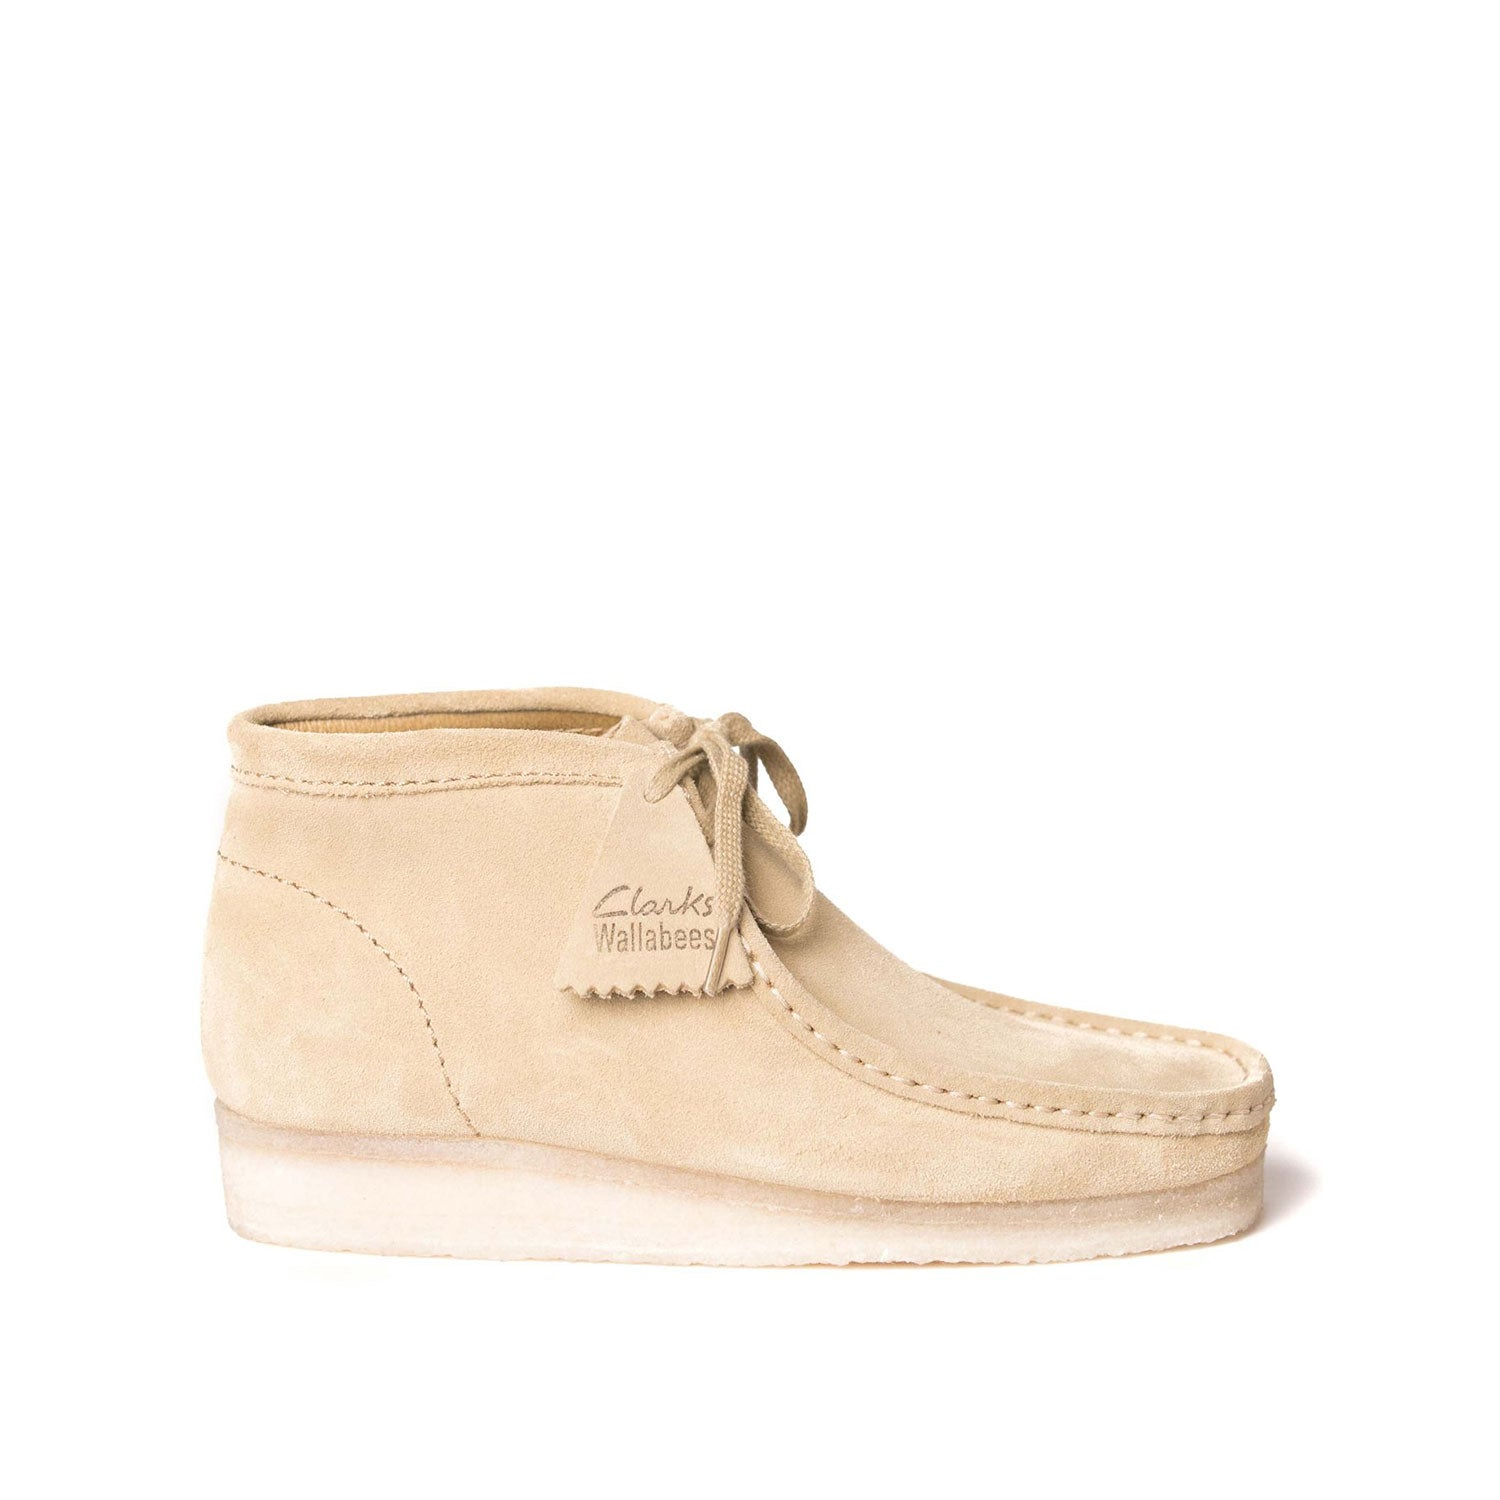 Wallabee Boot Maple Suede Snake Oil Provisions